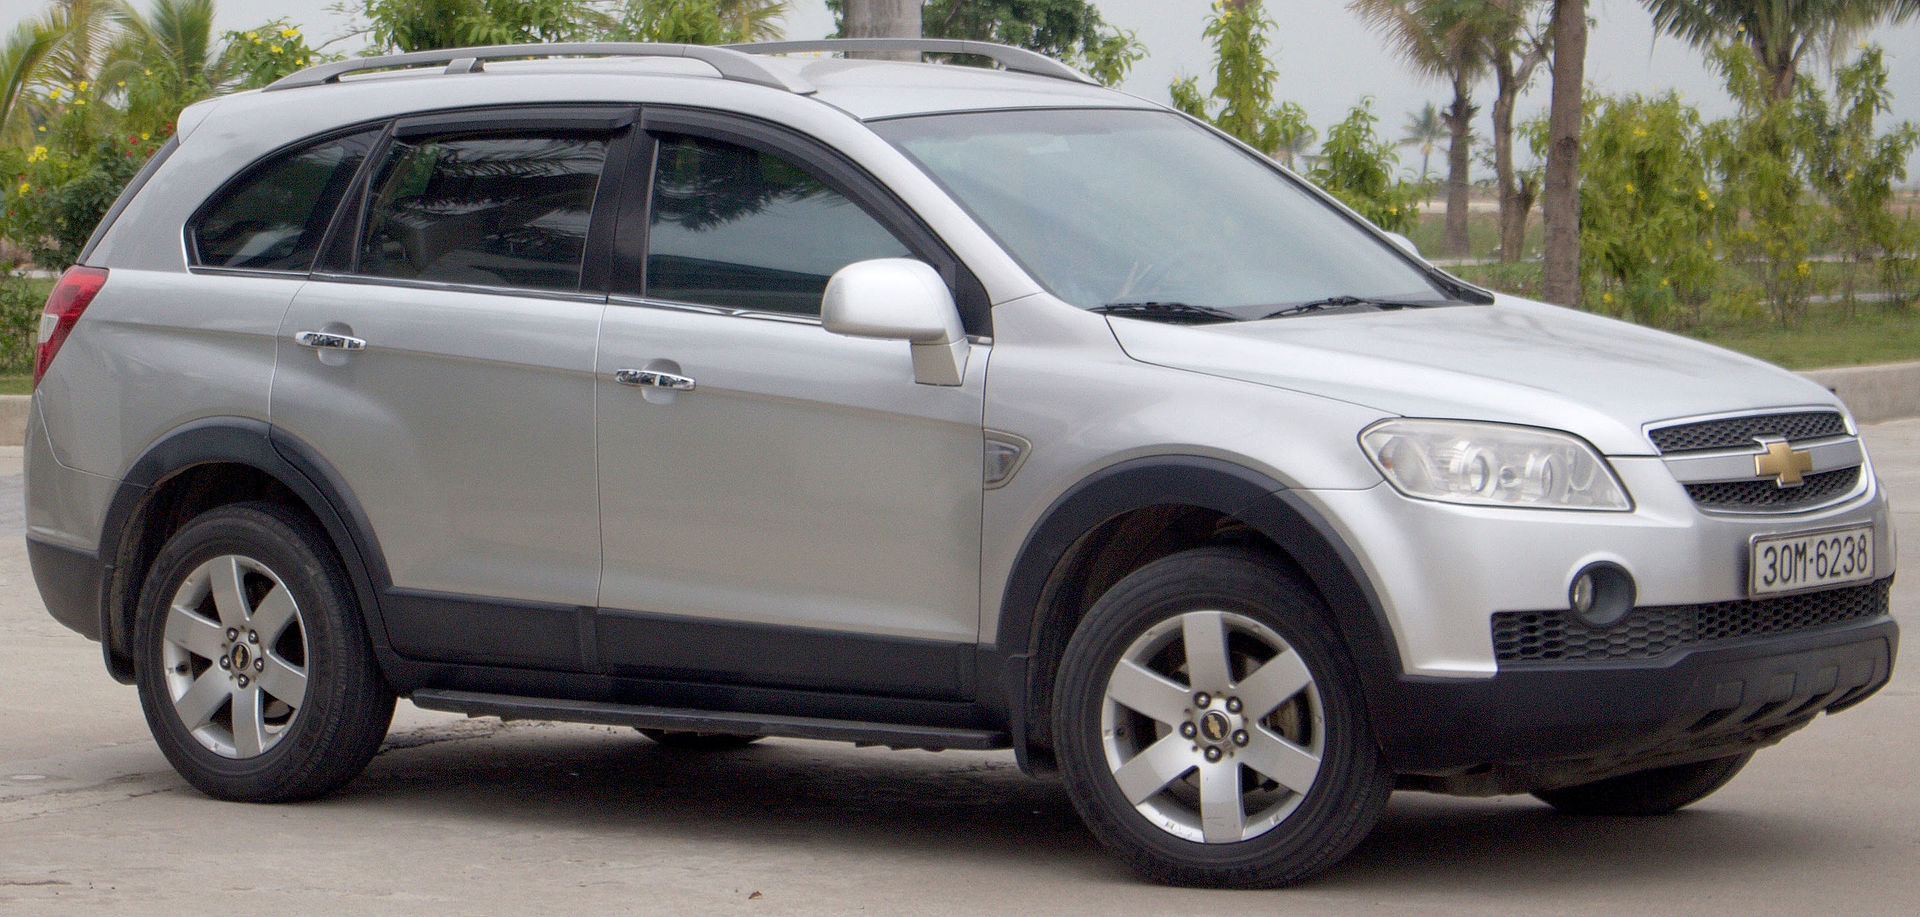 Px Chevrolet Captiva Ls Wagon